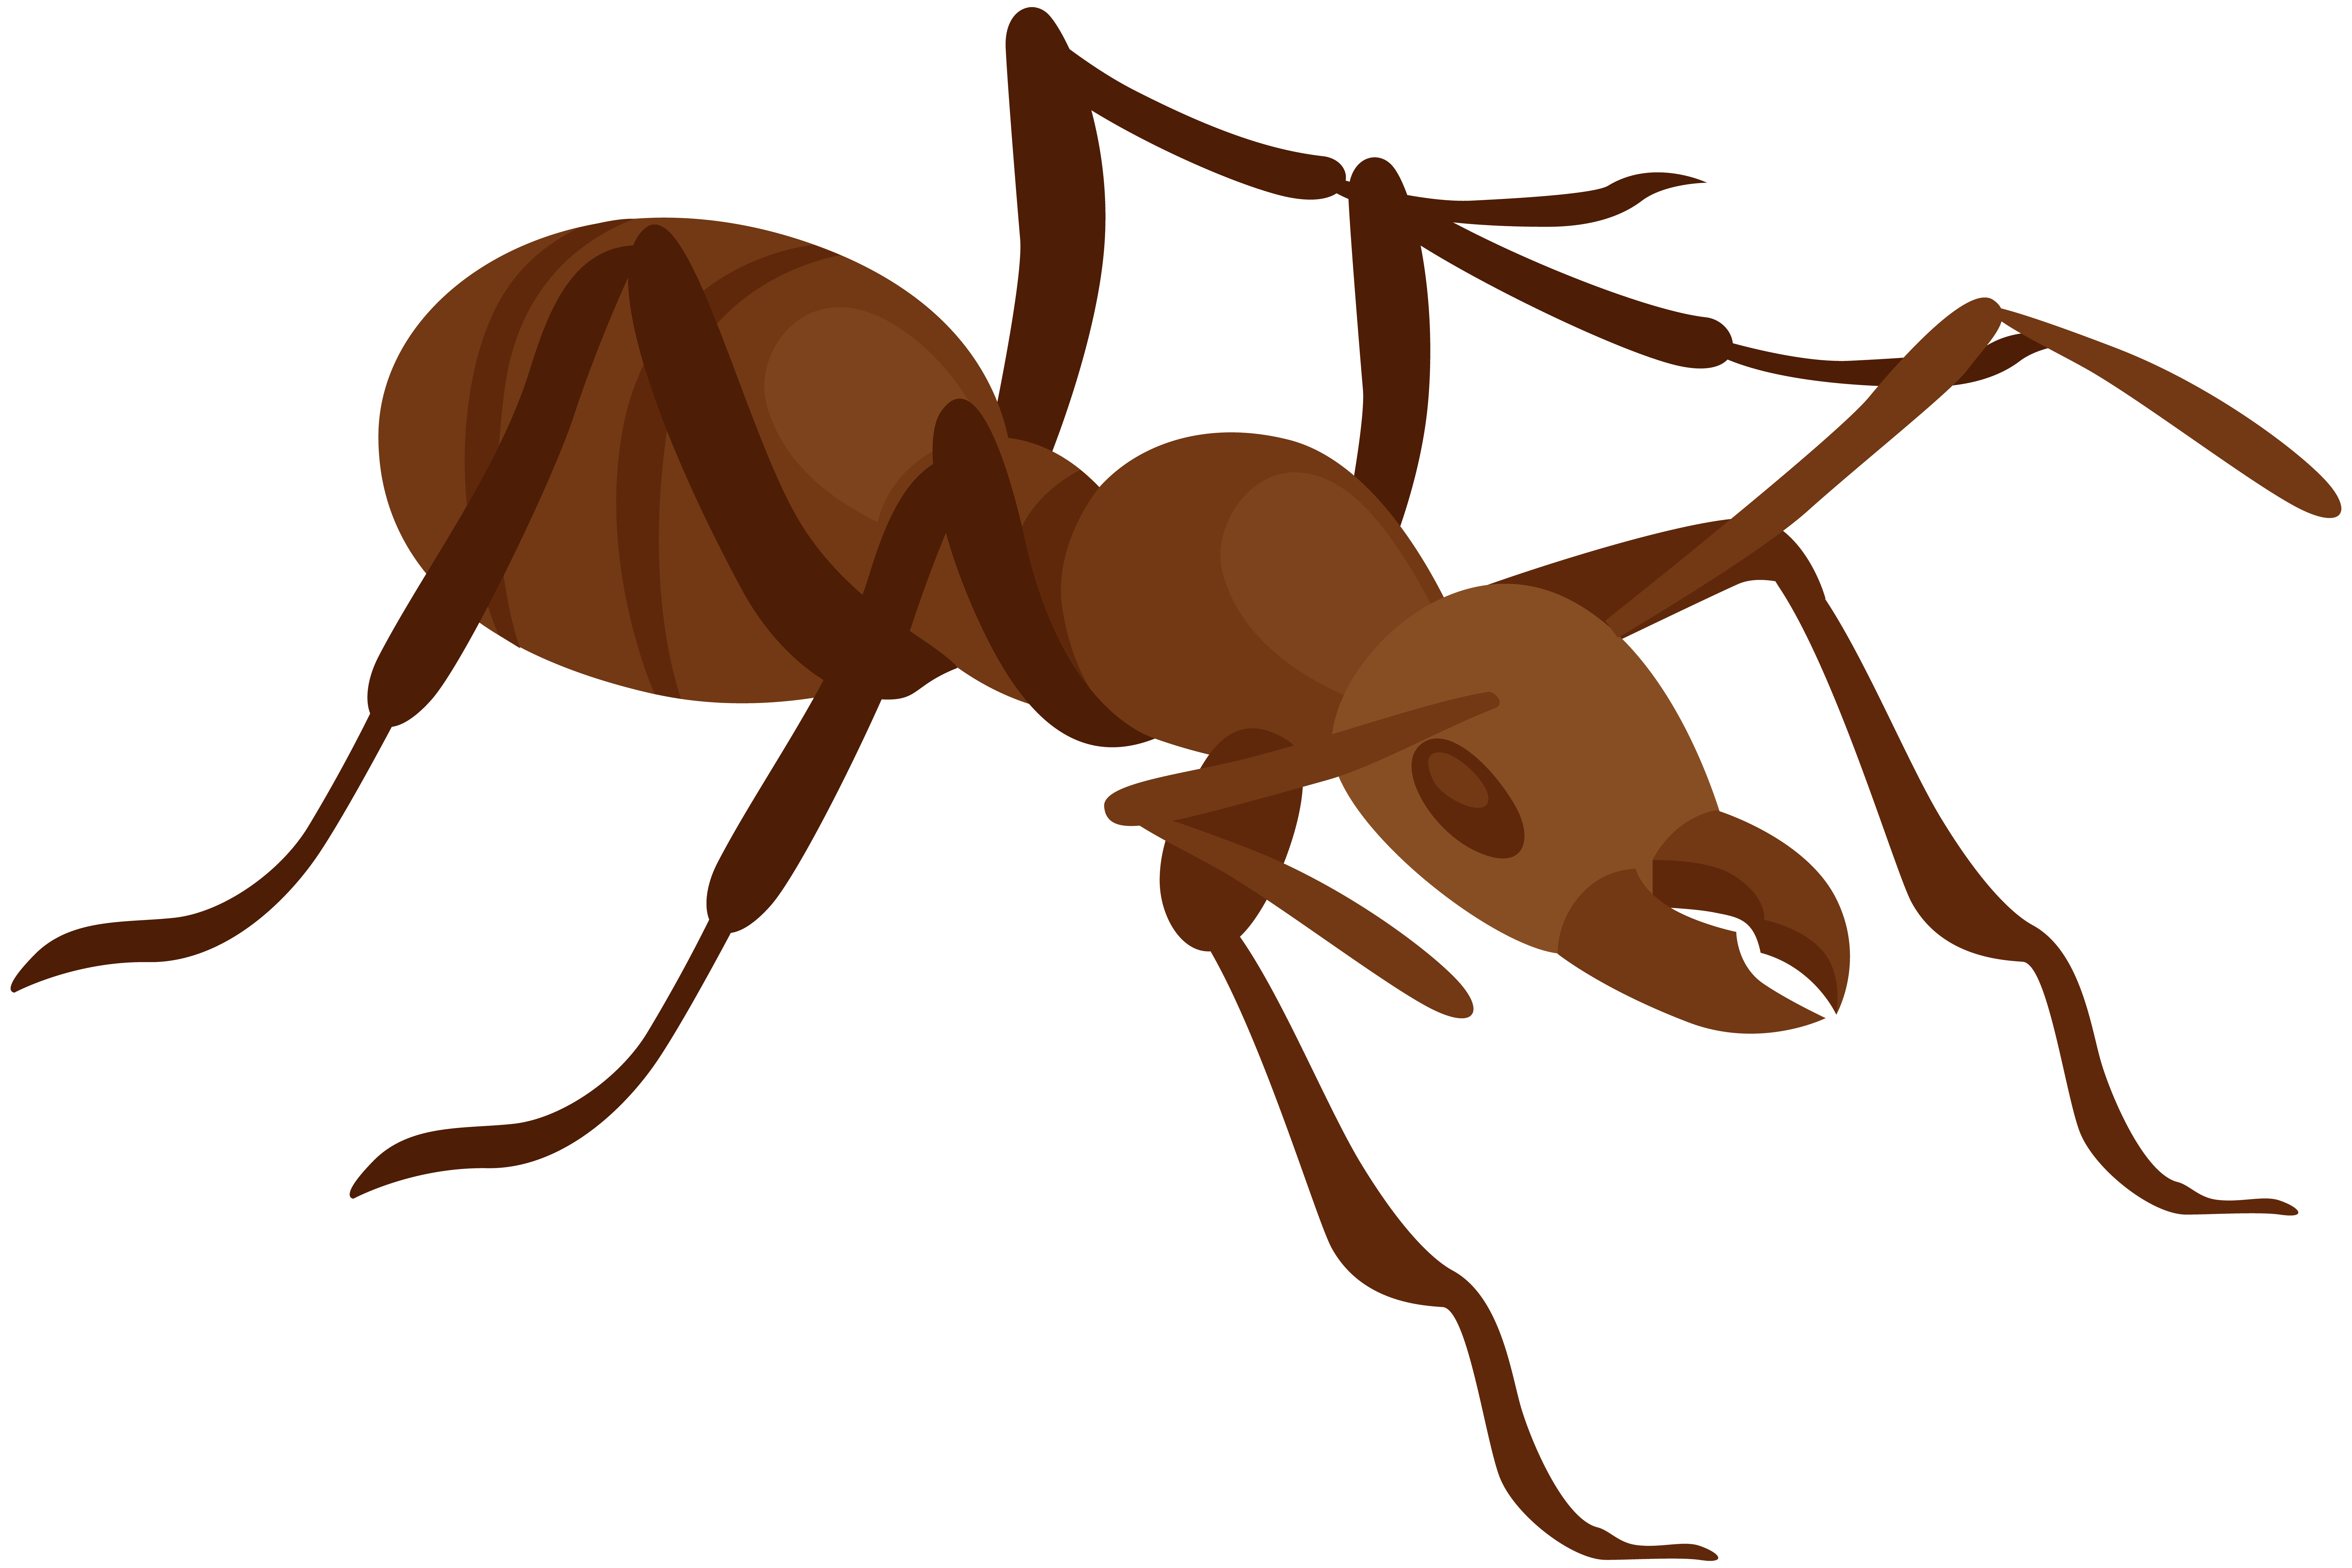 ant clipart at getdrawings com free for personal use ant clipart rh getdrawings com clip art images of ants clip art ants marching